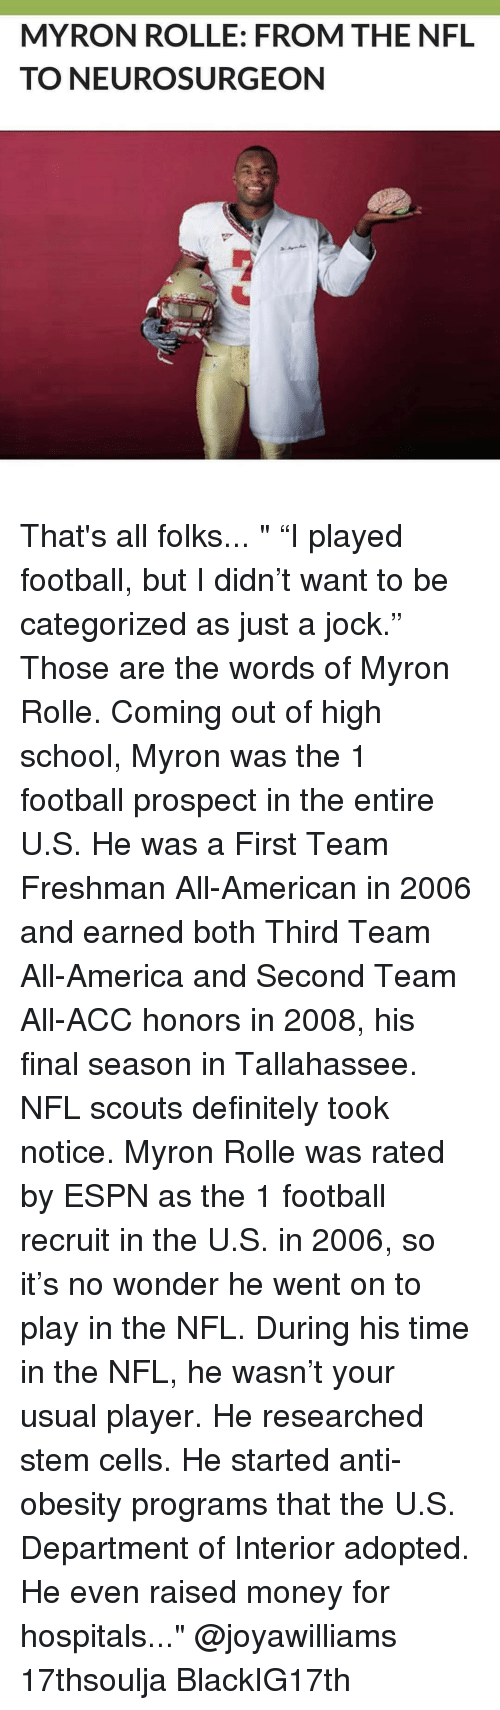 """America, Definitely, and Espn: MYRON ROLLE: FROM THE NFL  TO NEURO SURGEON That's all folks... """" """"I played football, but I didn't want to be categorized as just a jock."""" Those are the words of Myron Rolle. Coming out of high school, Myron was the 1 football prospect in the entire U.S. He was a First Team Freshman All-American in 2006 and earned both Third Team All-America and Second Team All-ACC honors in 2008, his final season in Tallahassee. NFL scouts definitely took notice. Myron Rolle was rated by ESPN as the 1 football recruit in the U.S. in 2006, so it's no wonder he went on to play in the NFL. During his time in the NFL, he wasn't your usual player. He researched stem cells. He started anti-obesity programs that the U.S. Department of Interior adopted. He even raised money for hospitals..."""" @joyawilliams 17thsoulja BlackIG17th"""